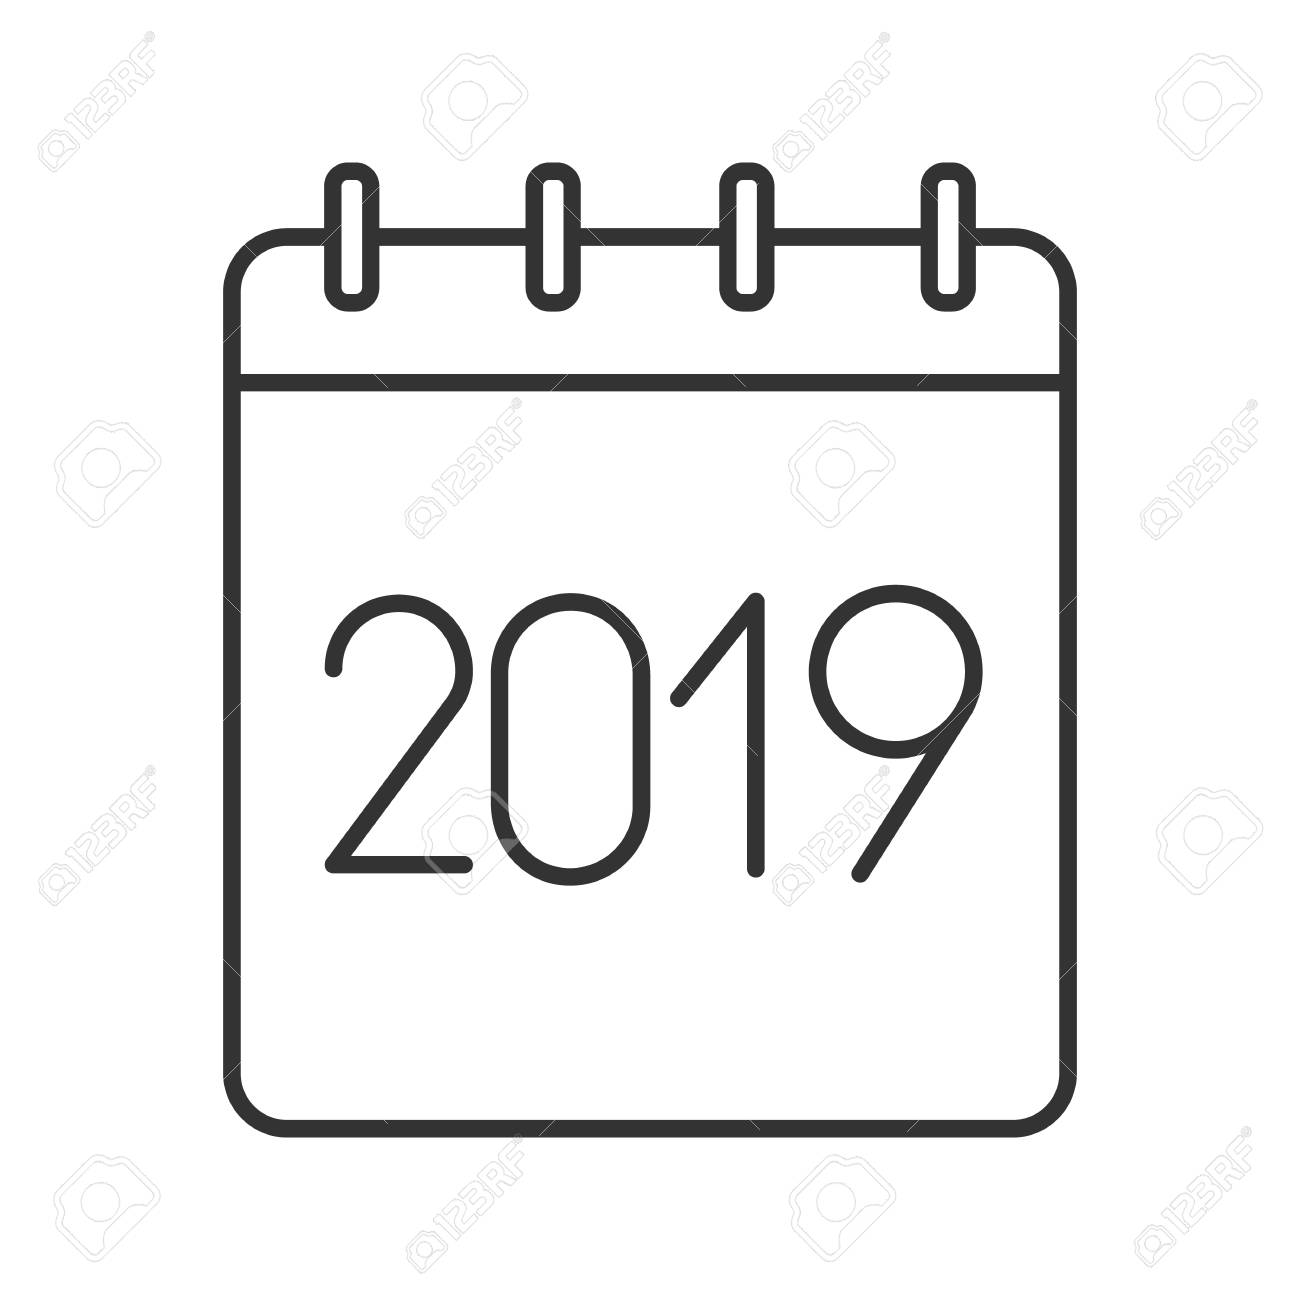 Illustration Calendrier.2019 Annual Calendar Linear Icon Thin Line Illustration Yearly